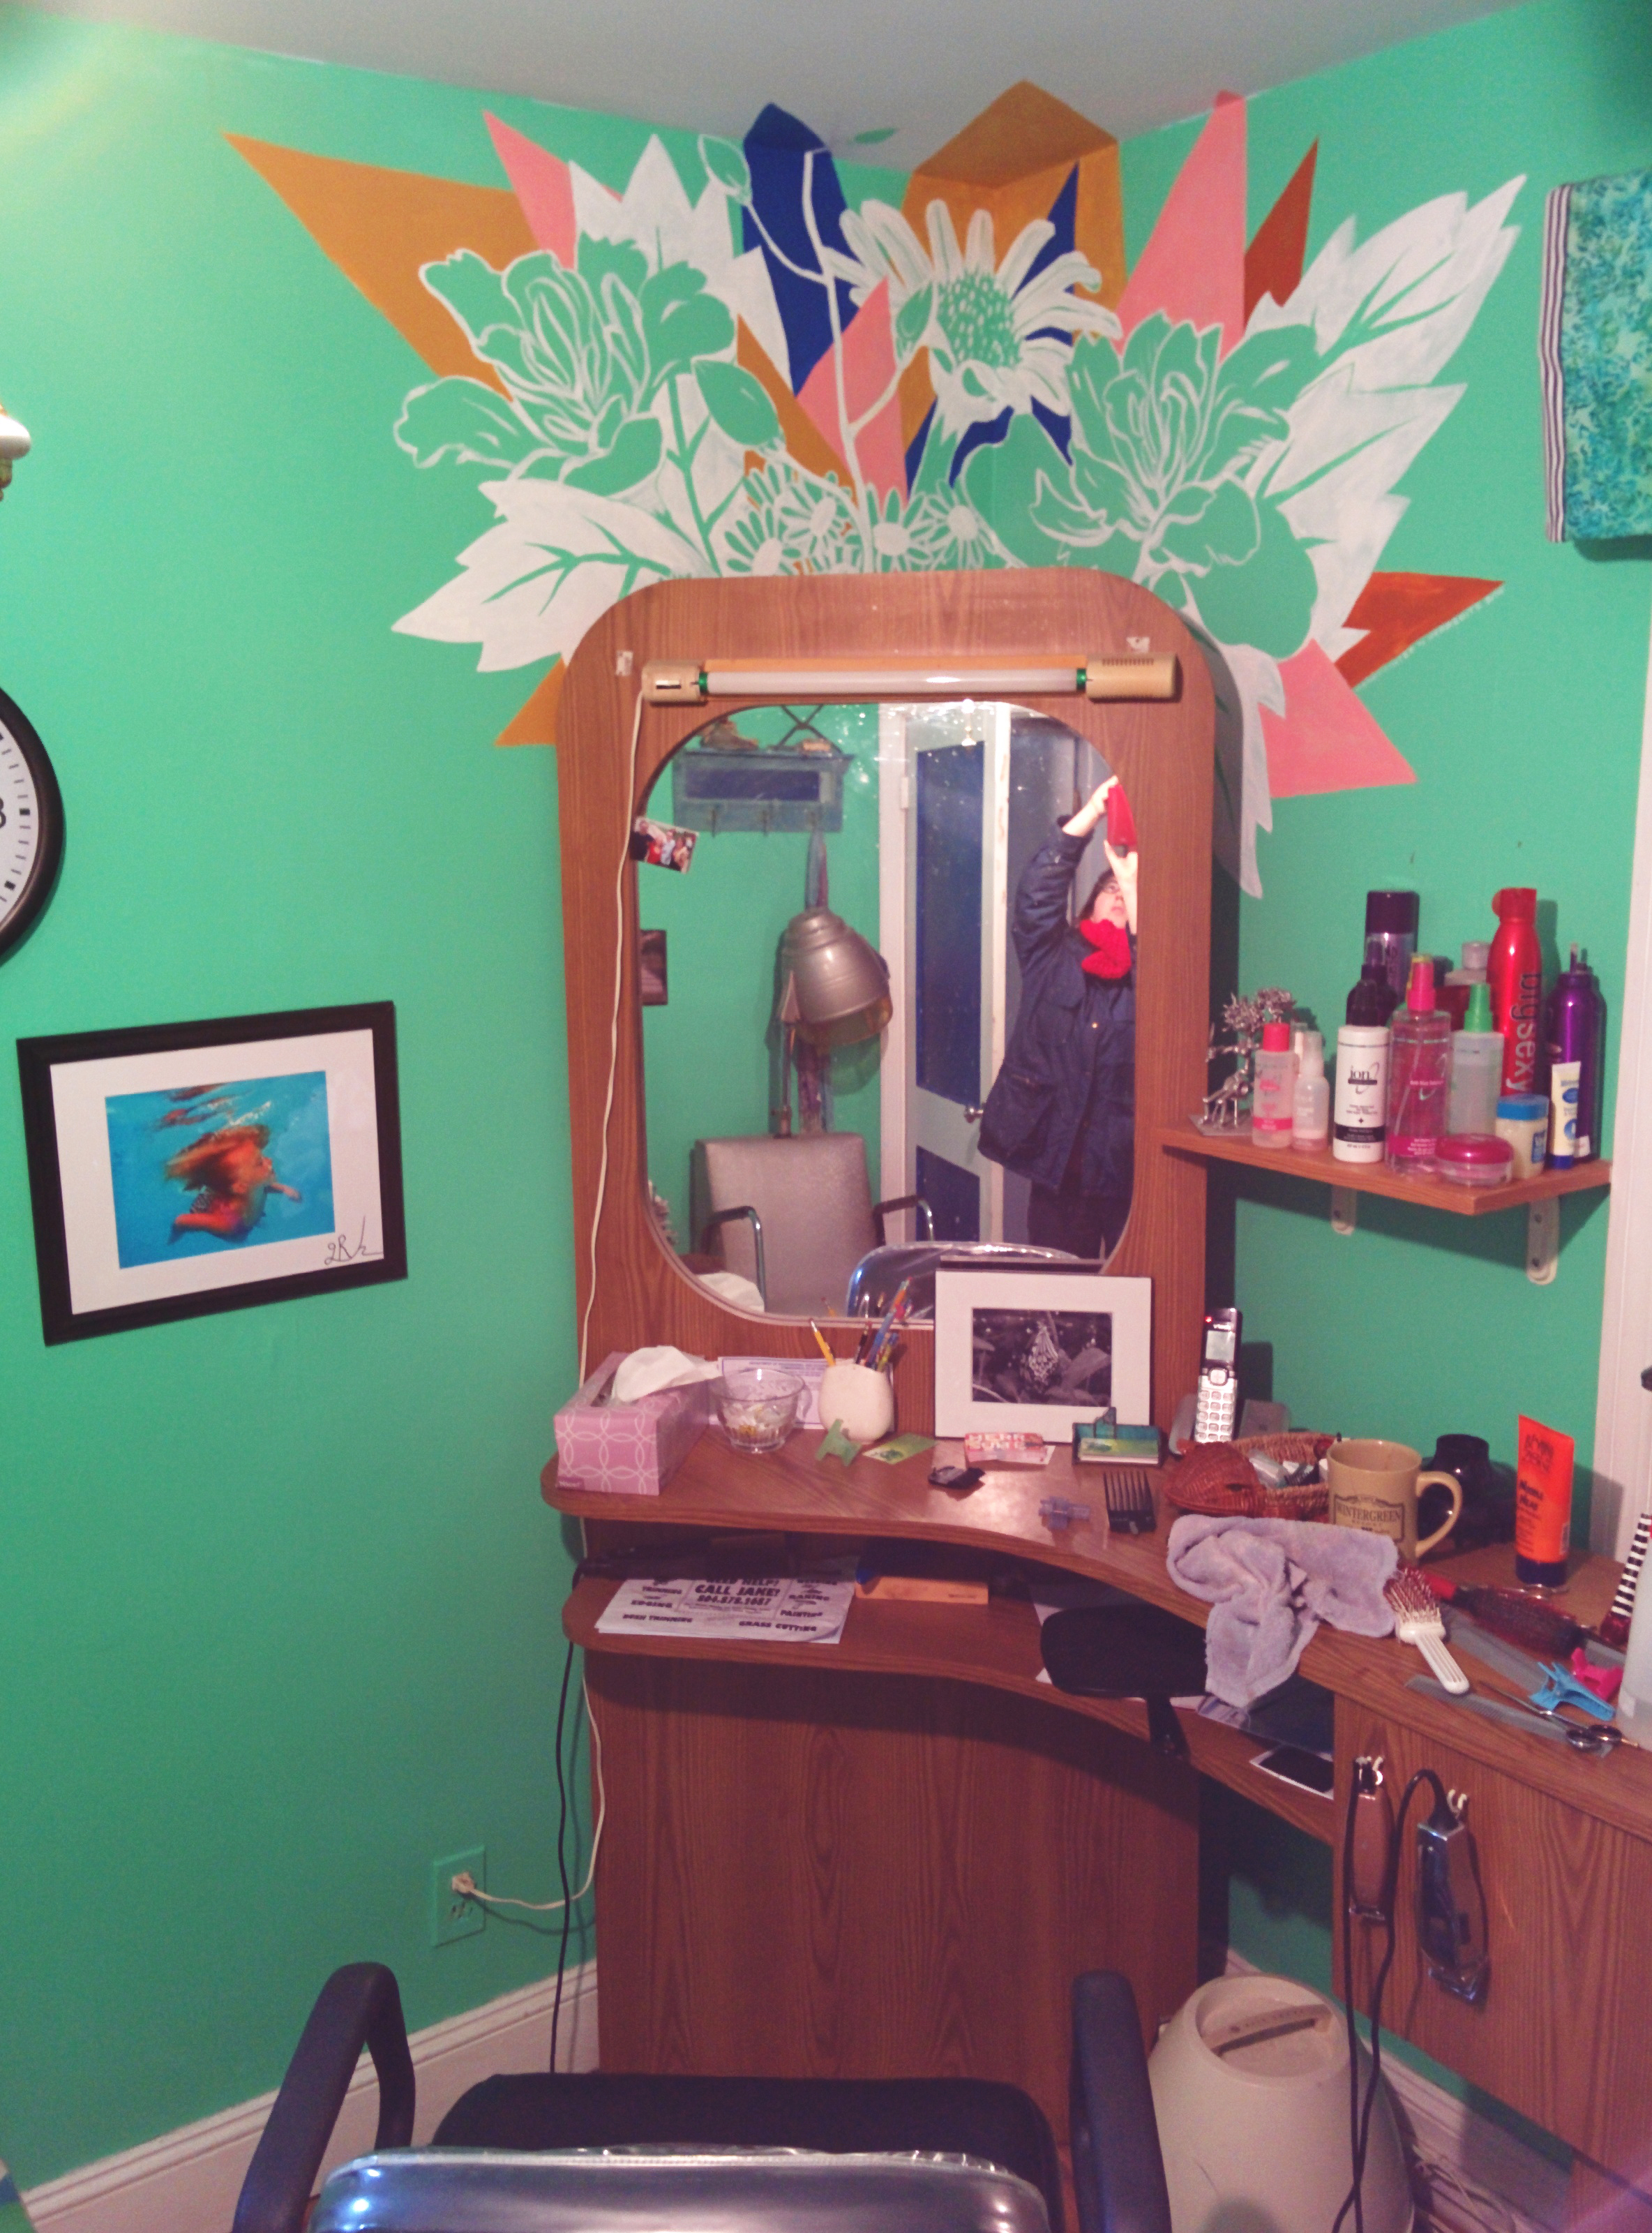 After moving the salon mirror back in place.